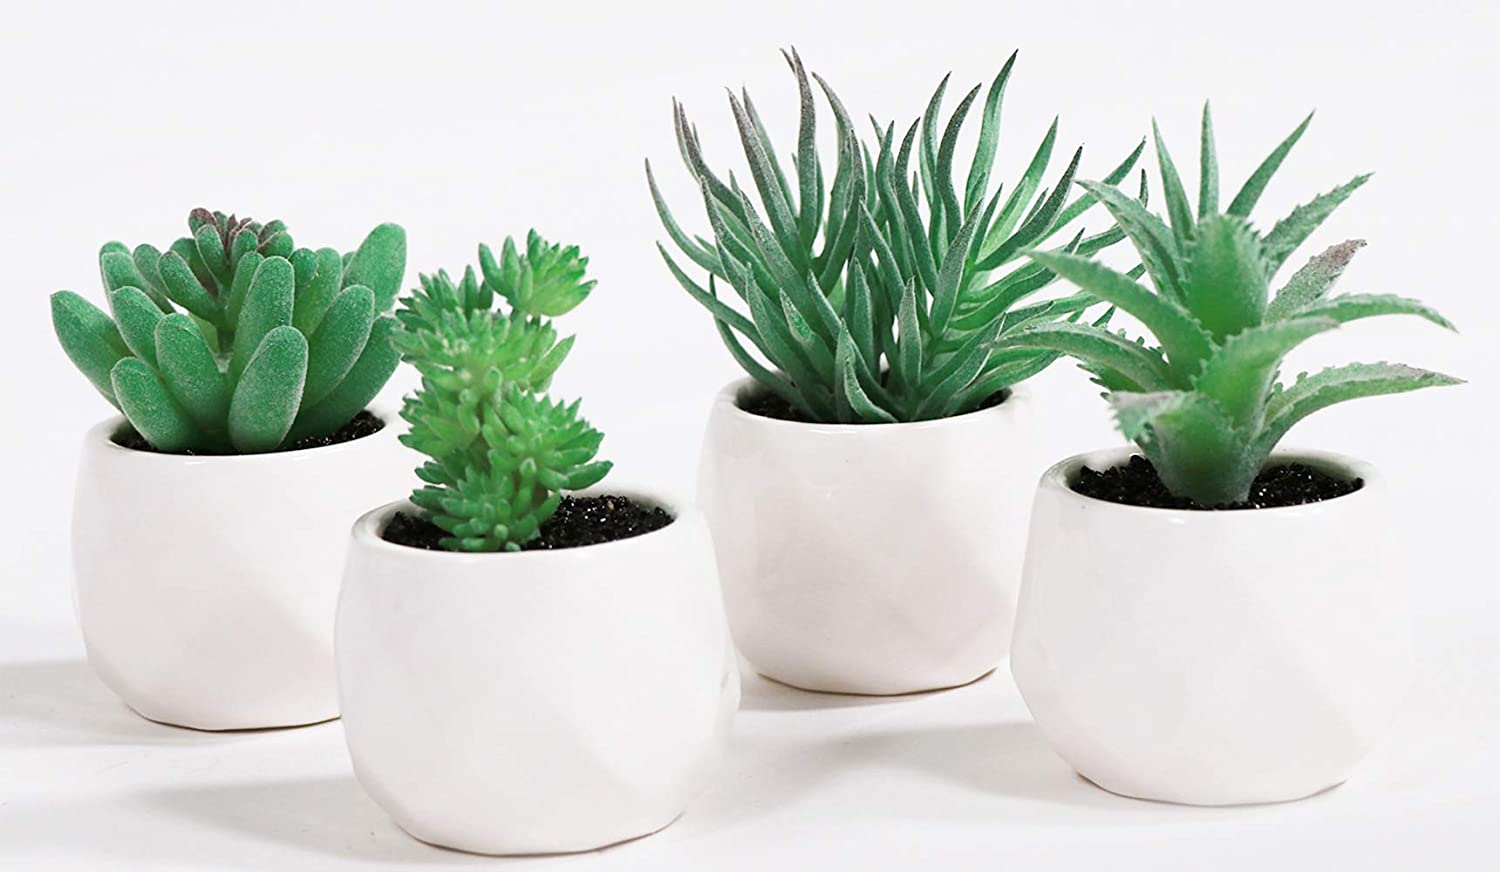 LITA Artificial Succulent Plants Fake Succulents Small Plants in White Ceramic Potted for Indoor Decor Office Room Desk Decoration4 Pots (Green -1)